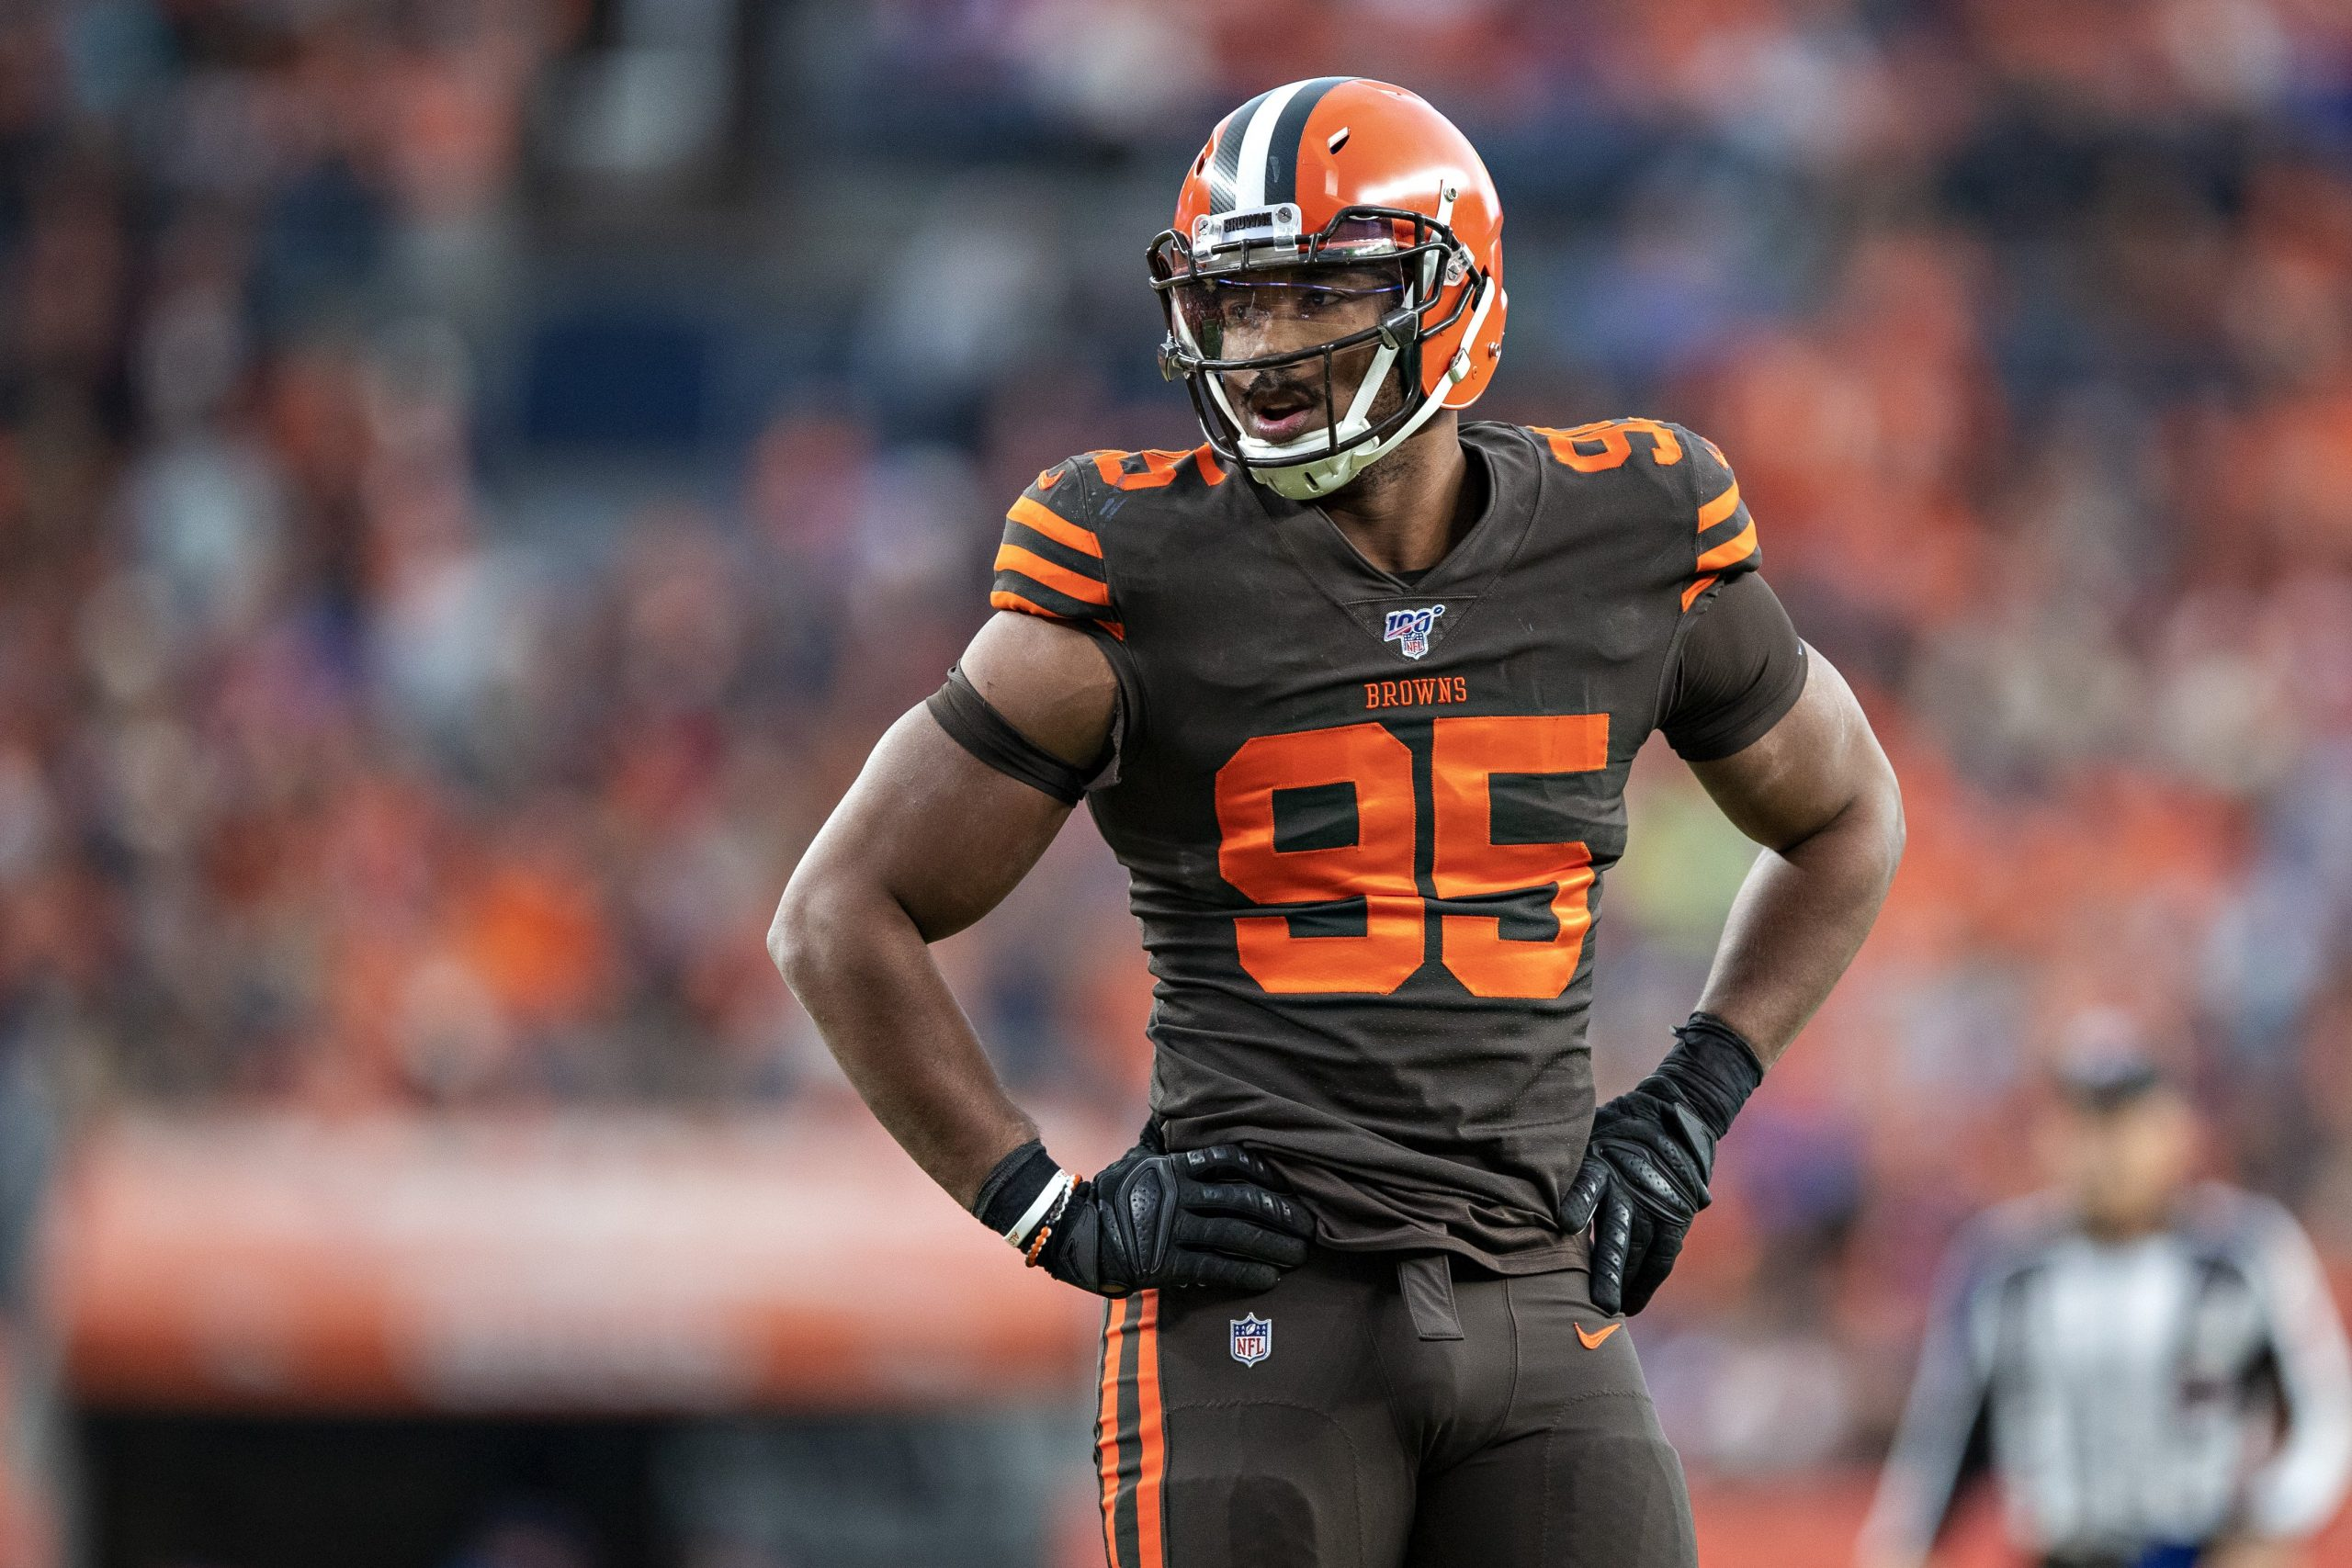 Myles Garrett nearing 5-year, $125 million extension with Browns: Report